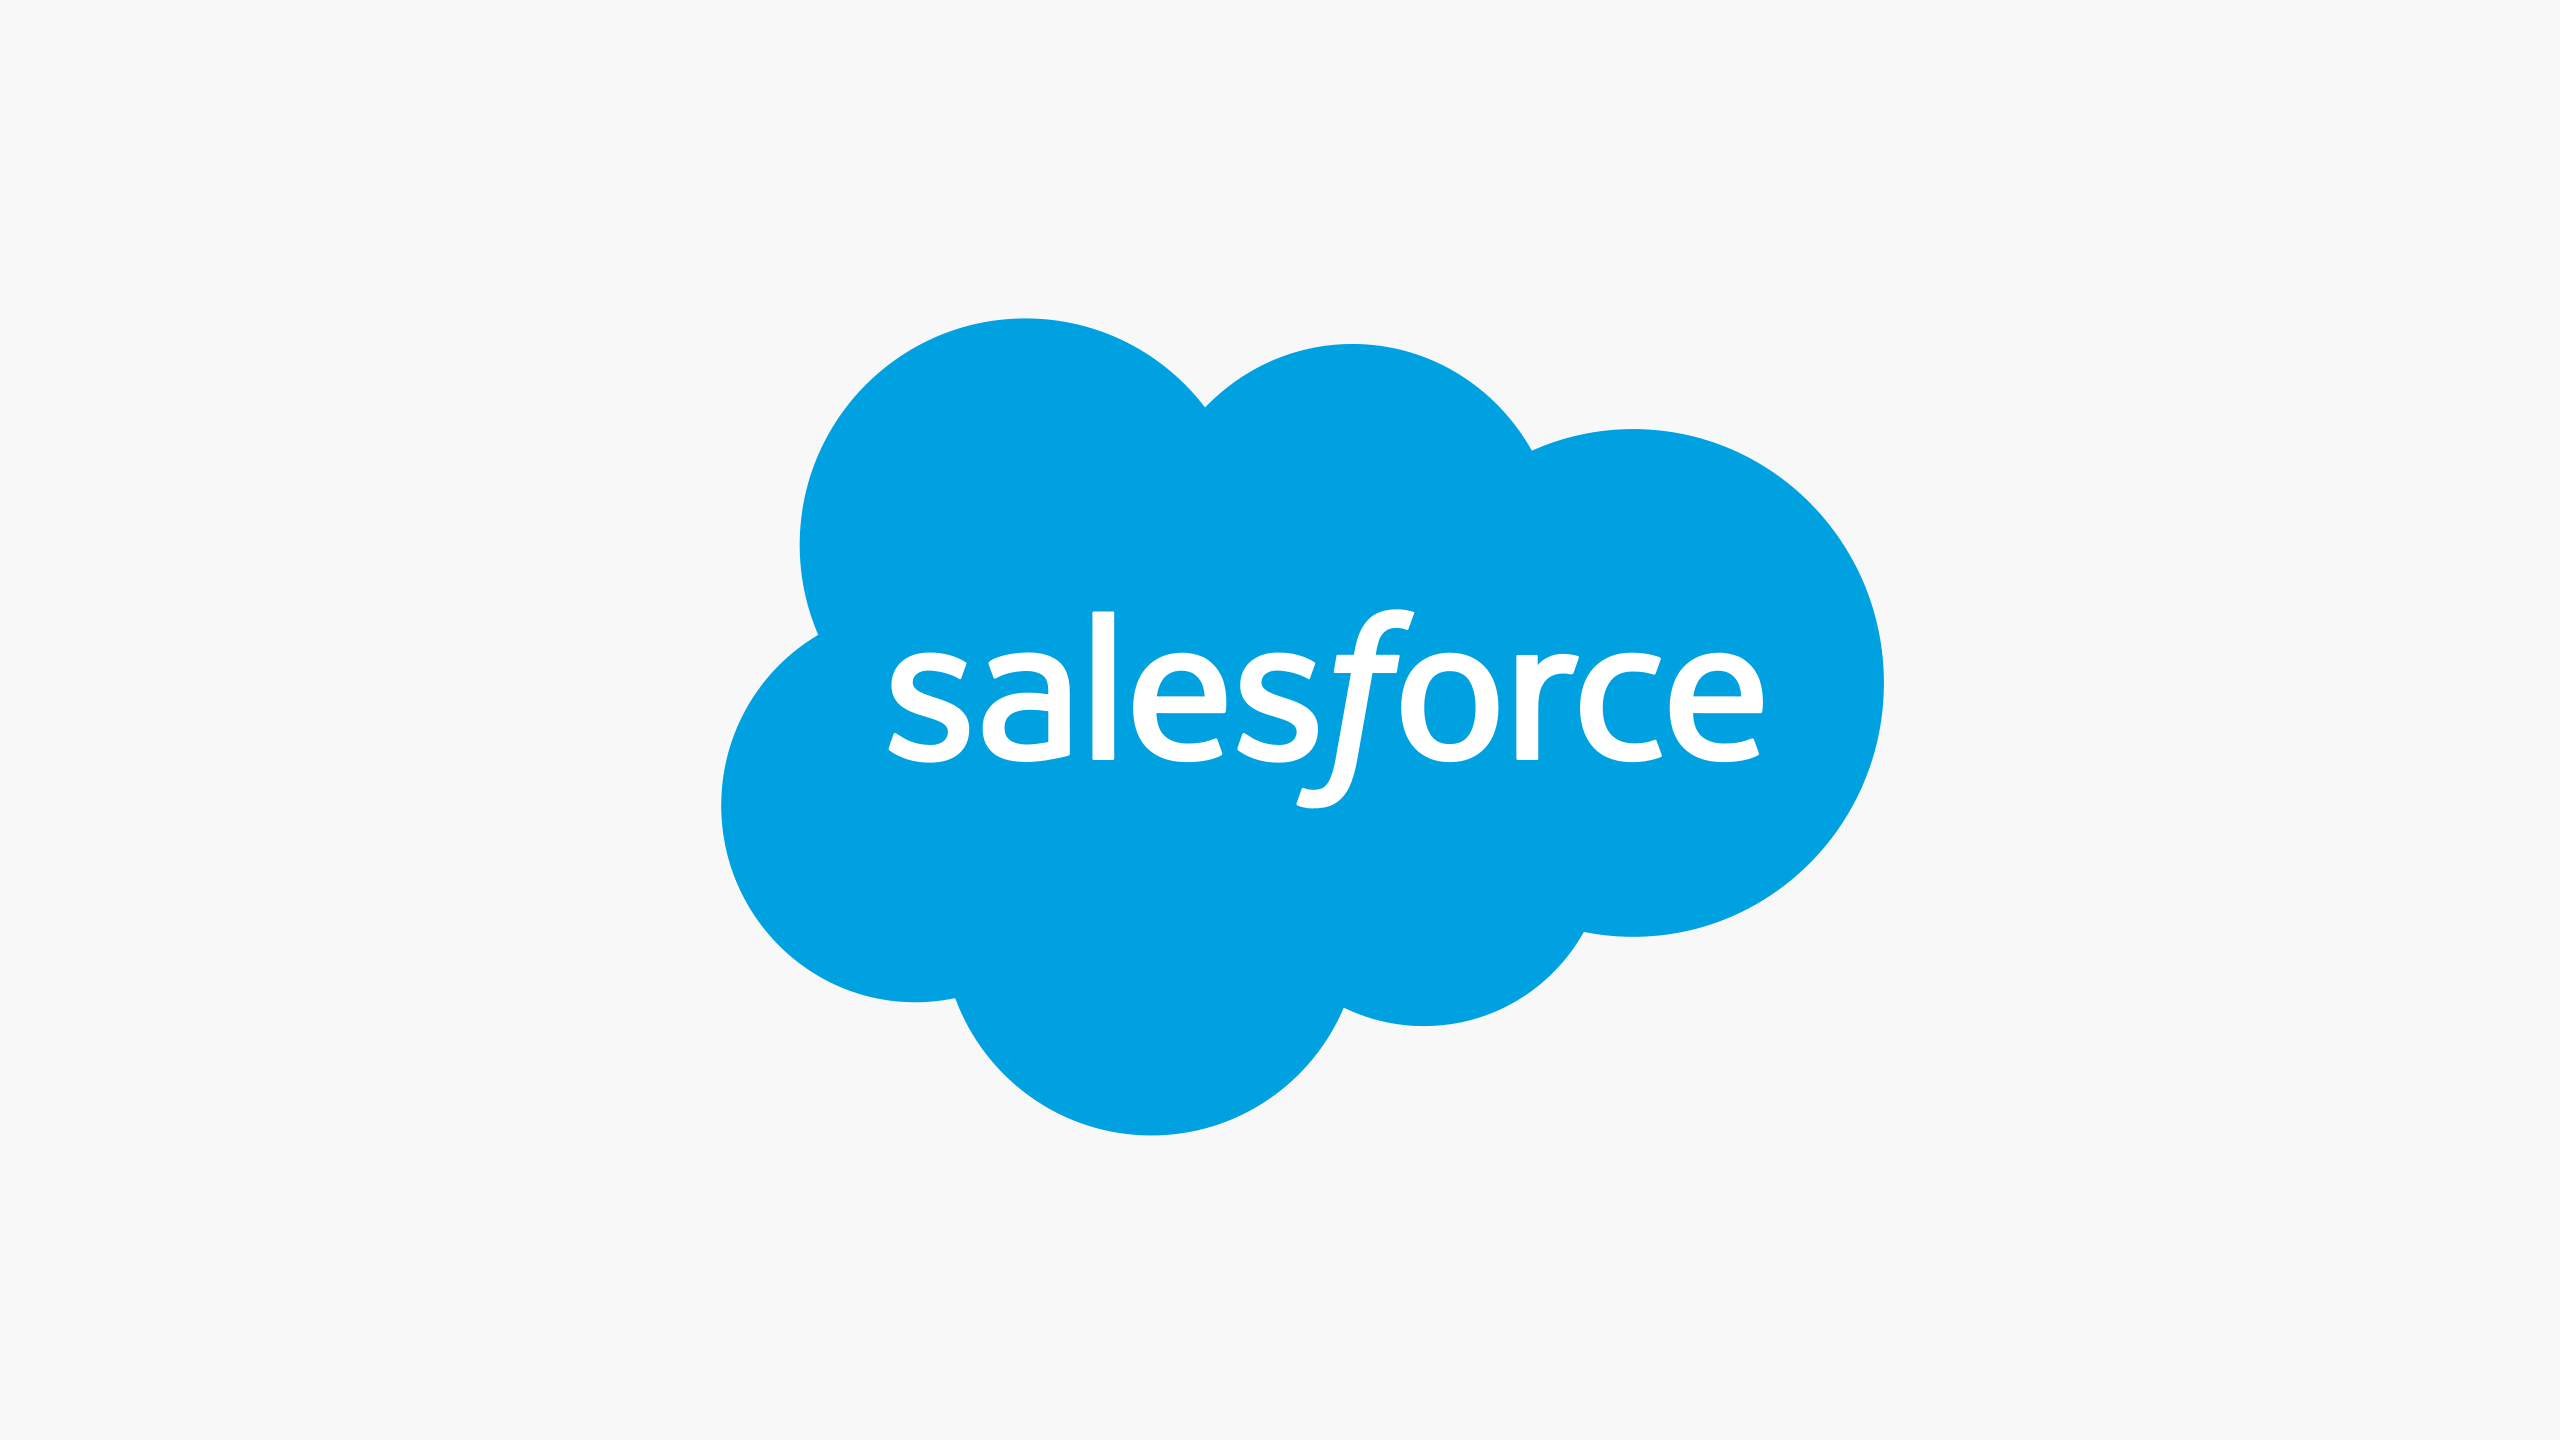 salesforce-brand-logo-blue-on-gray